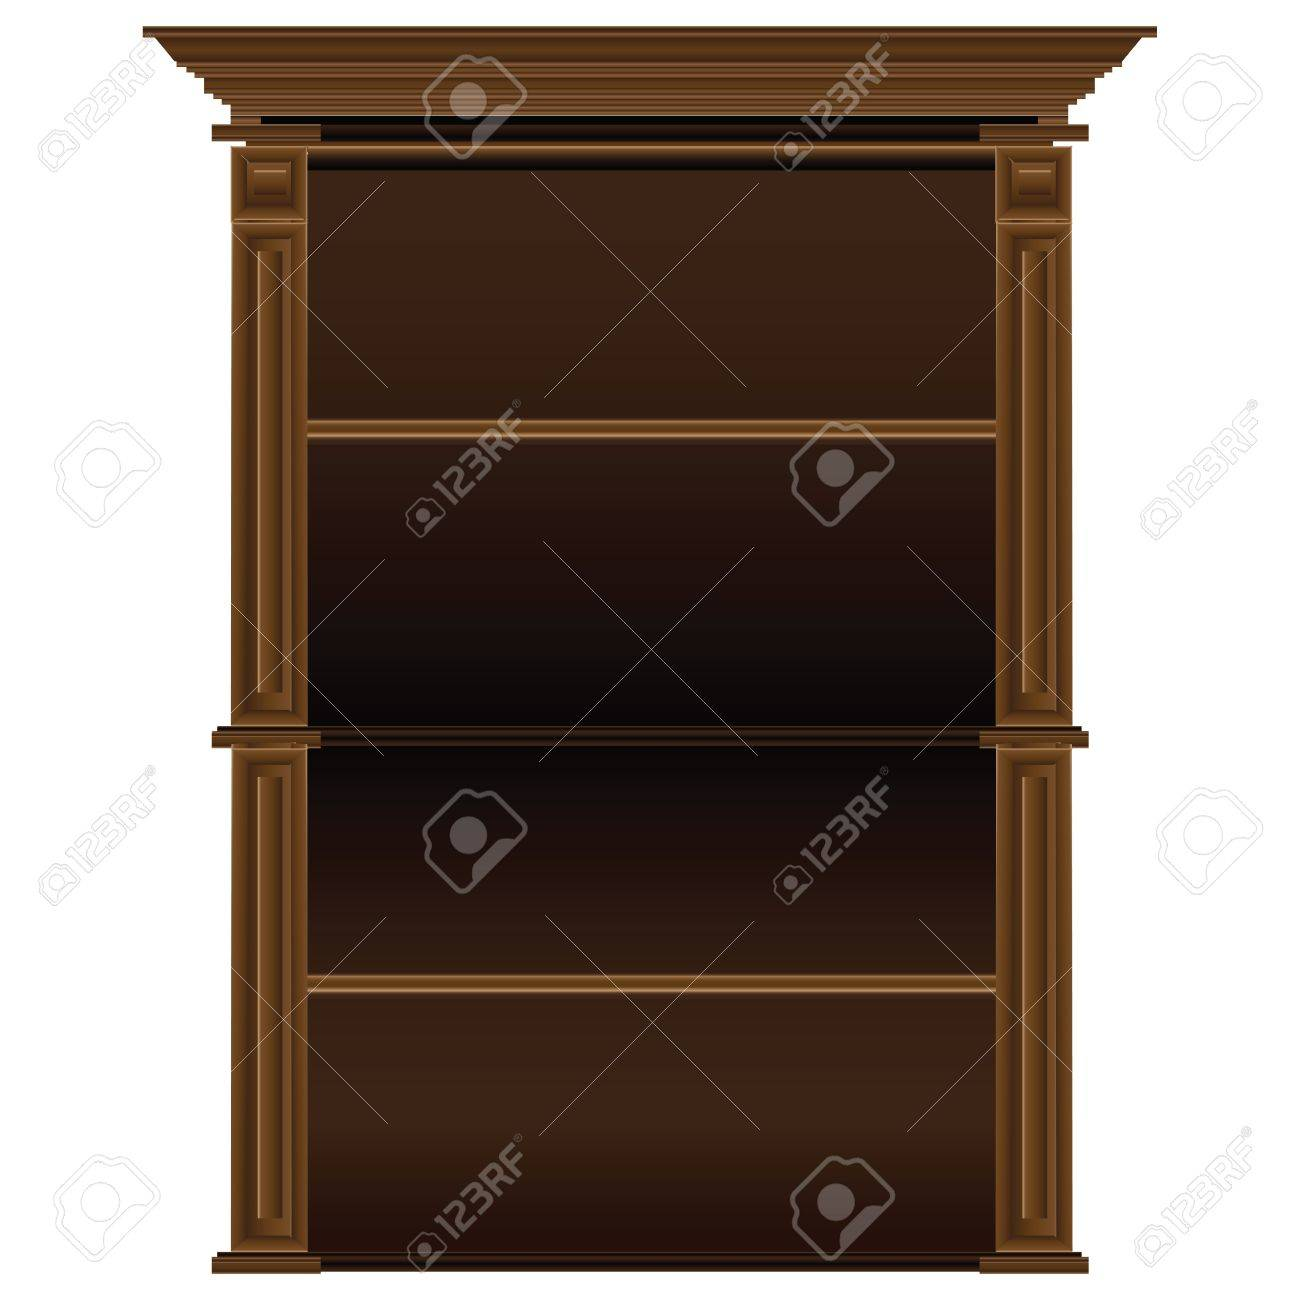 Old antique wooden shelves for dishes and books. Vector illustration. Stock Vector - 16875305